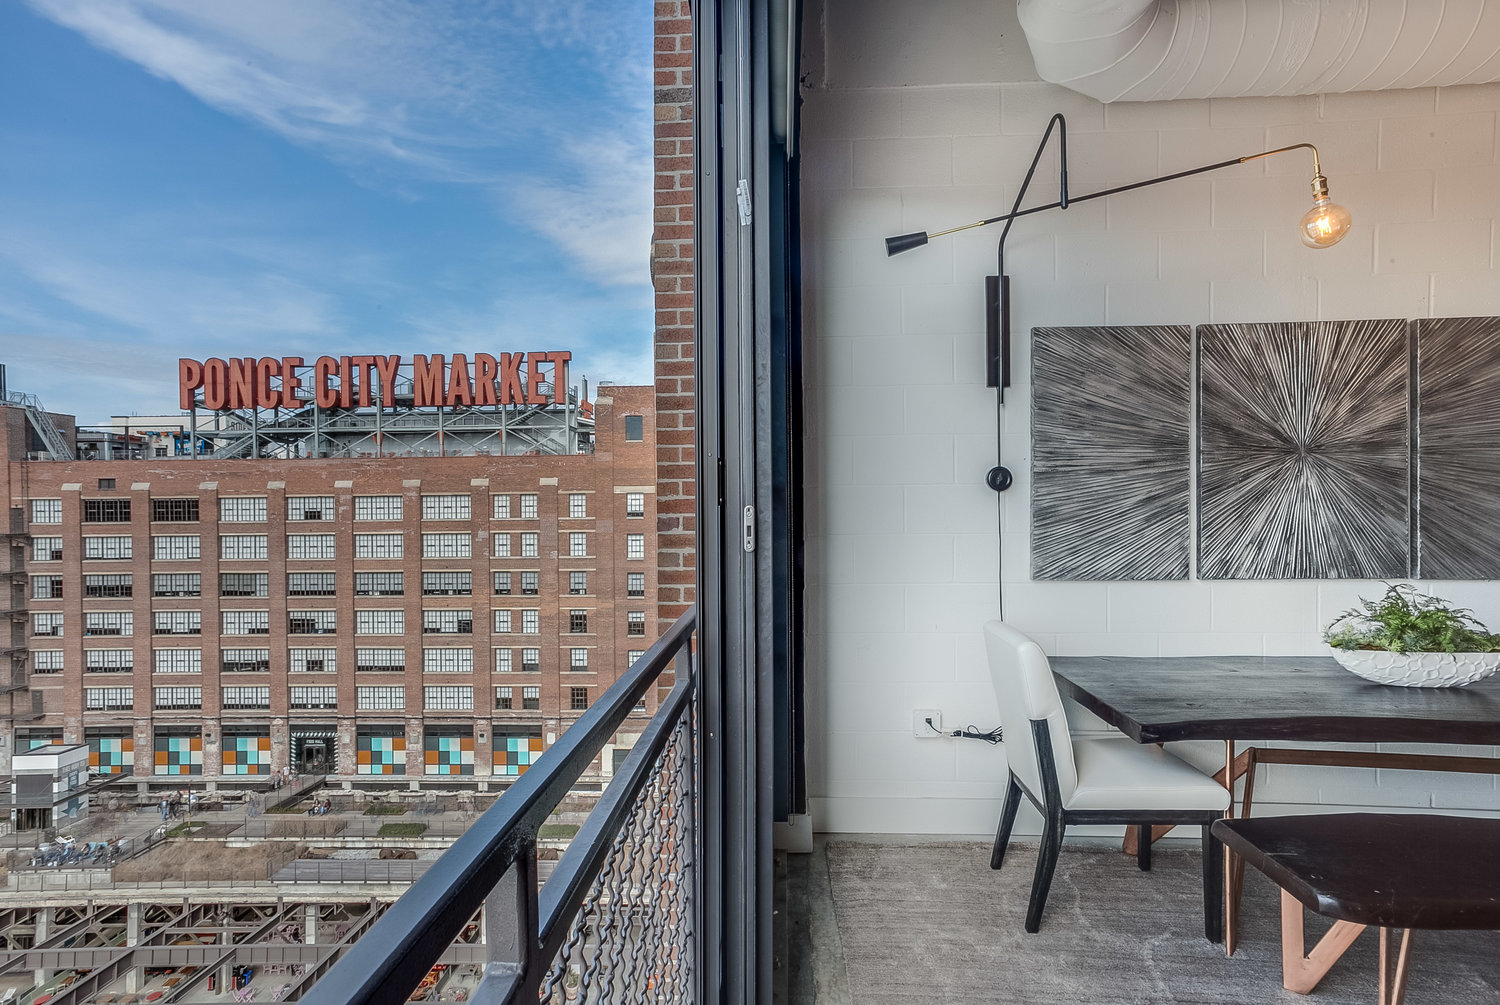 View of the Ponce City Market from our Luxury Vacation Rental in Atlanta, GA.